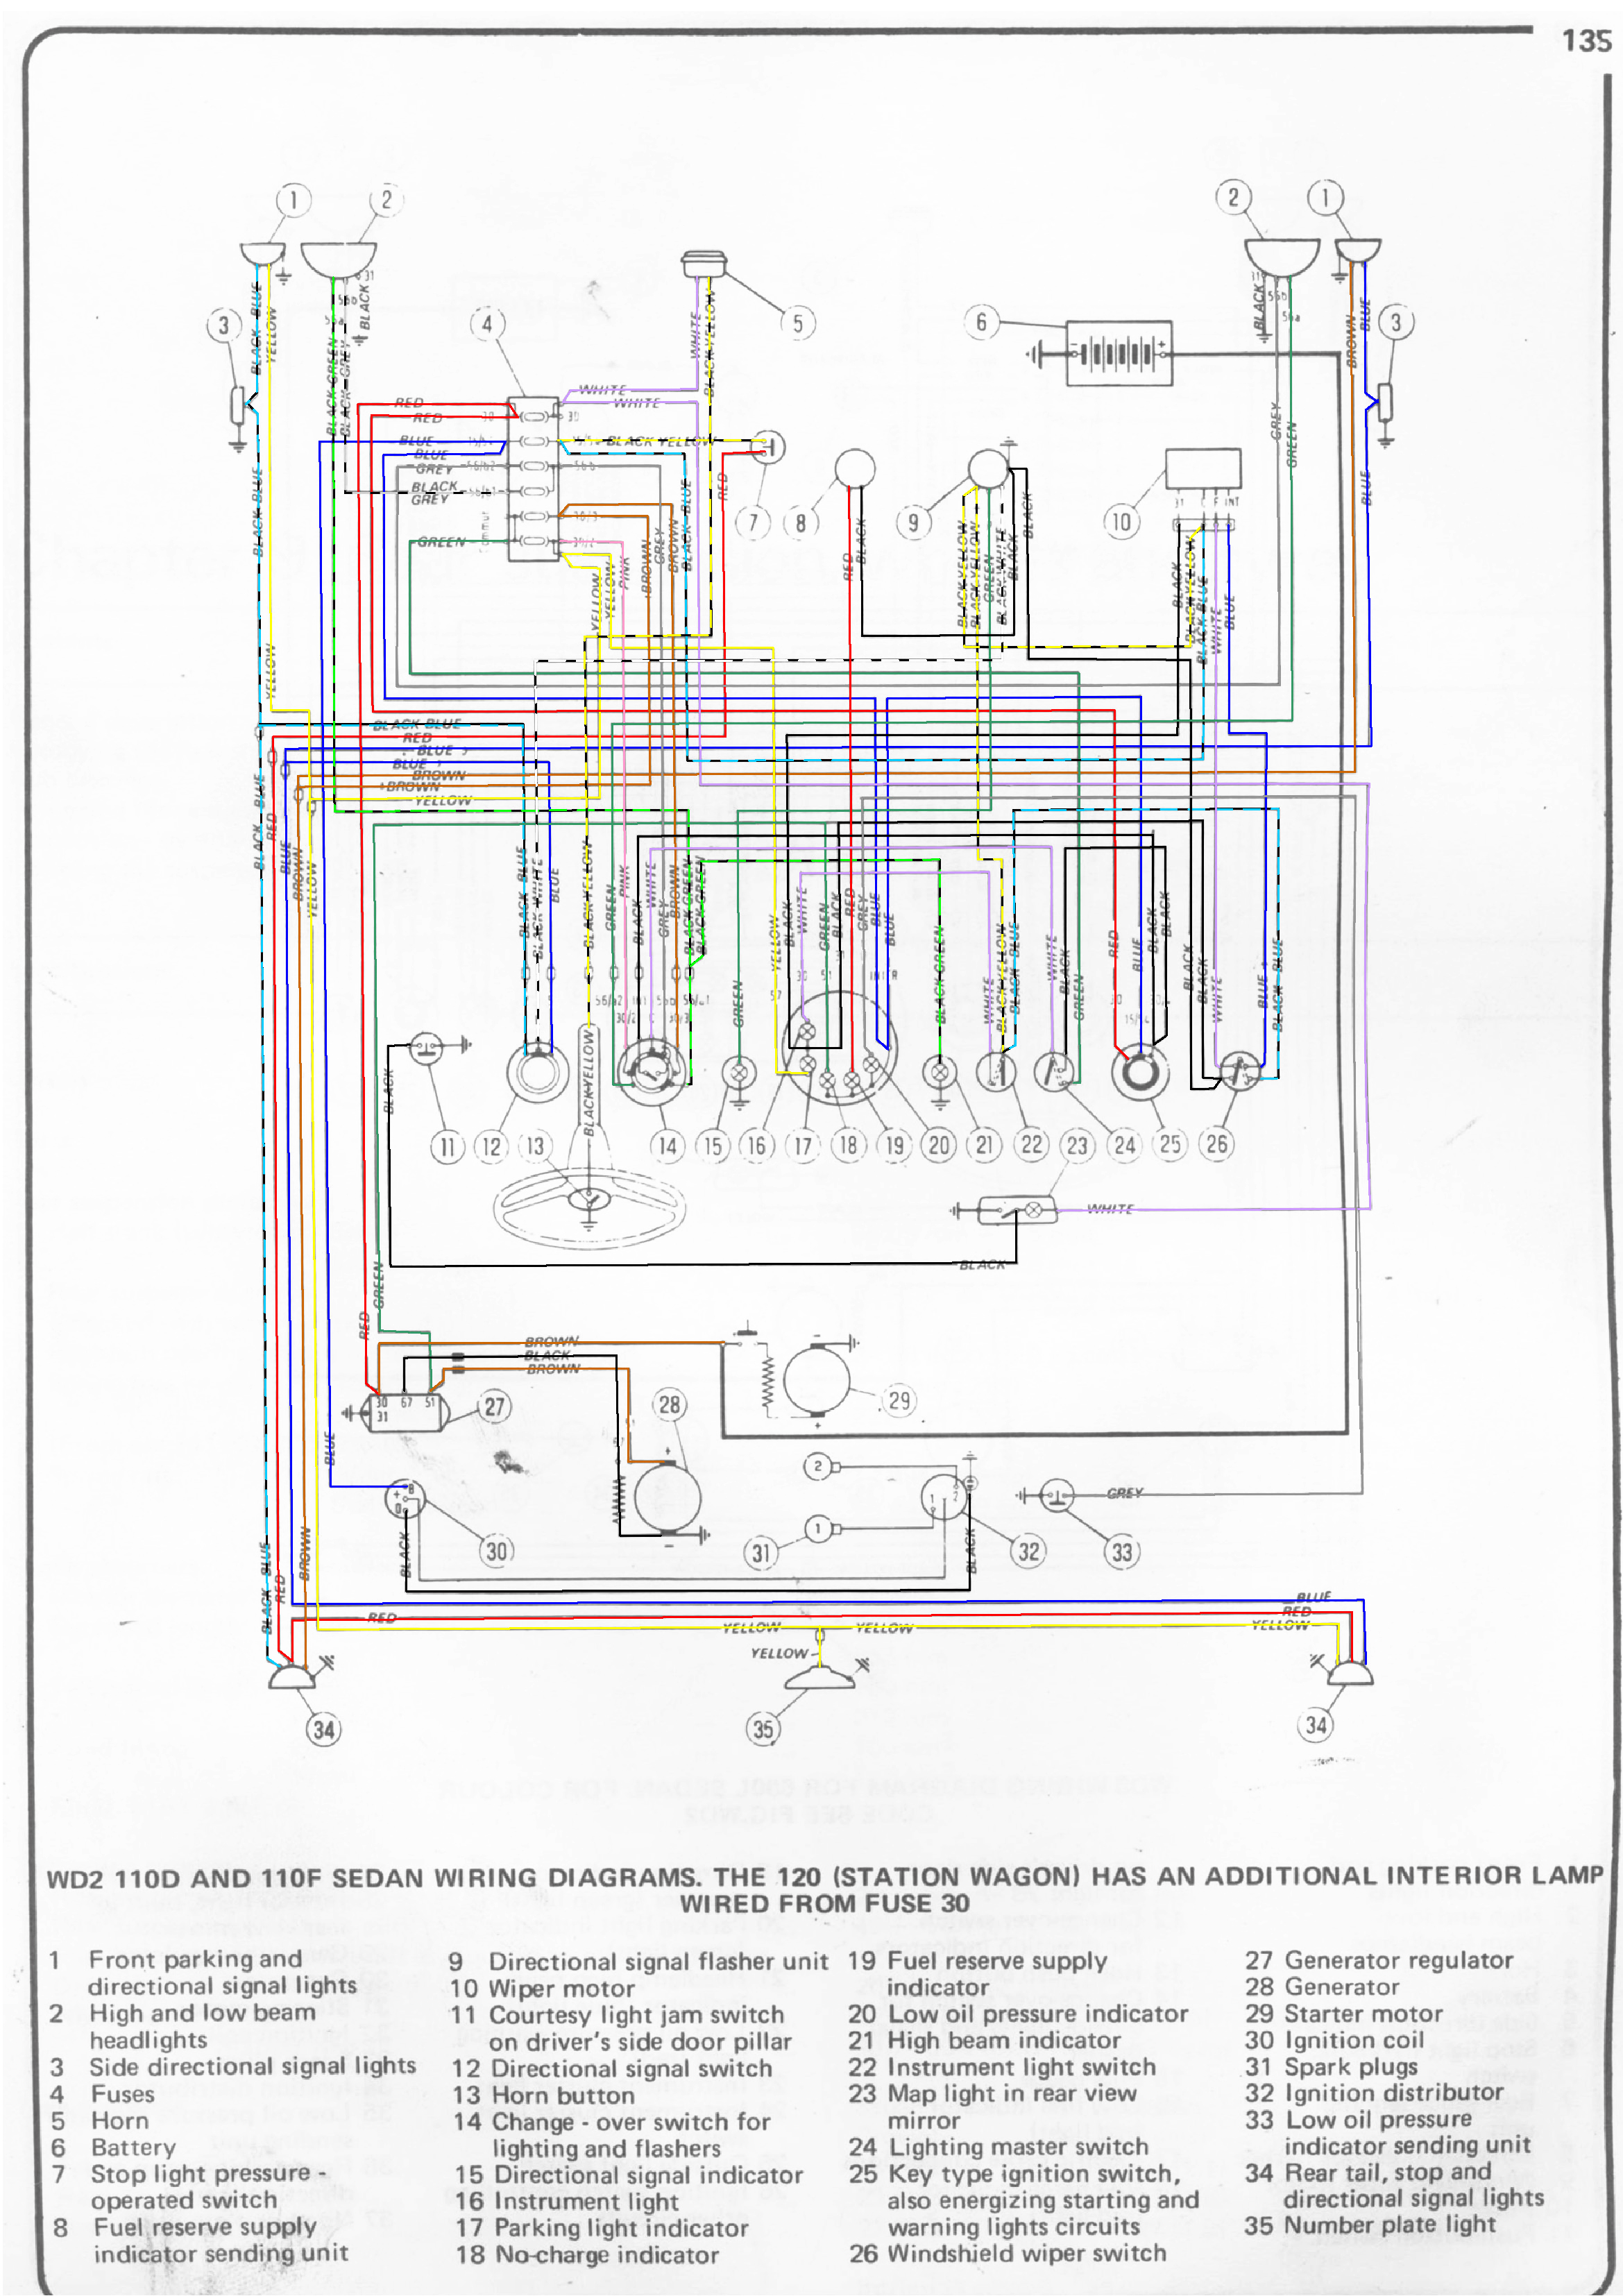 small resolution of 1973 fiat 1300 engine wiring wiring diagrams sight 1973 fiat 1300 engine wiring